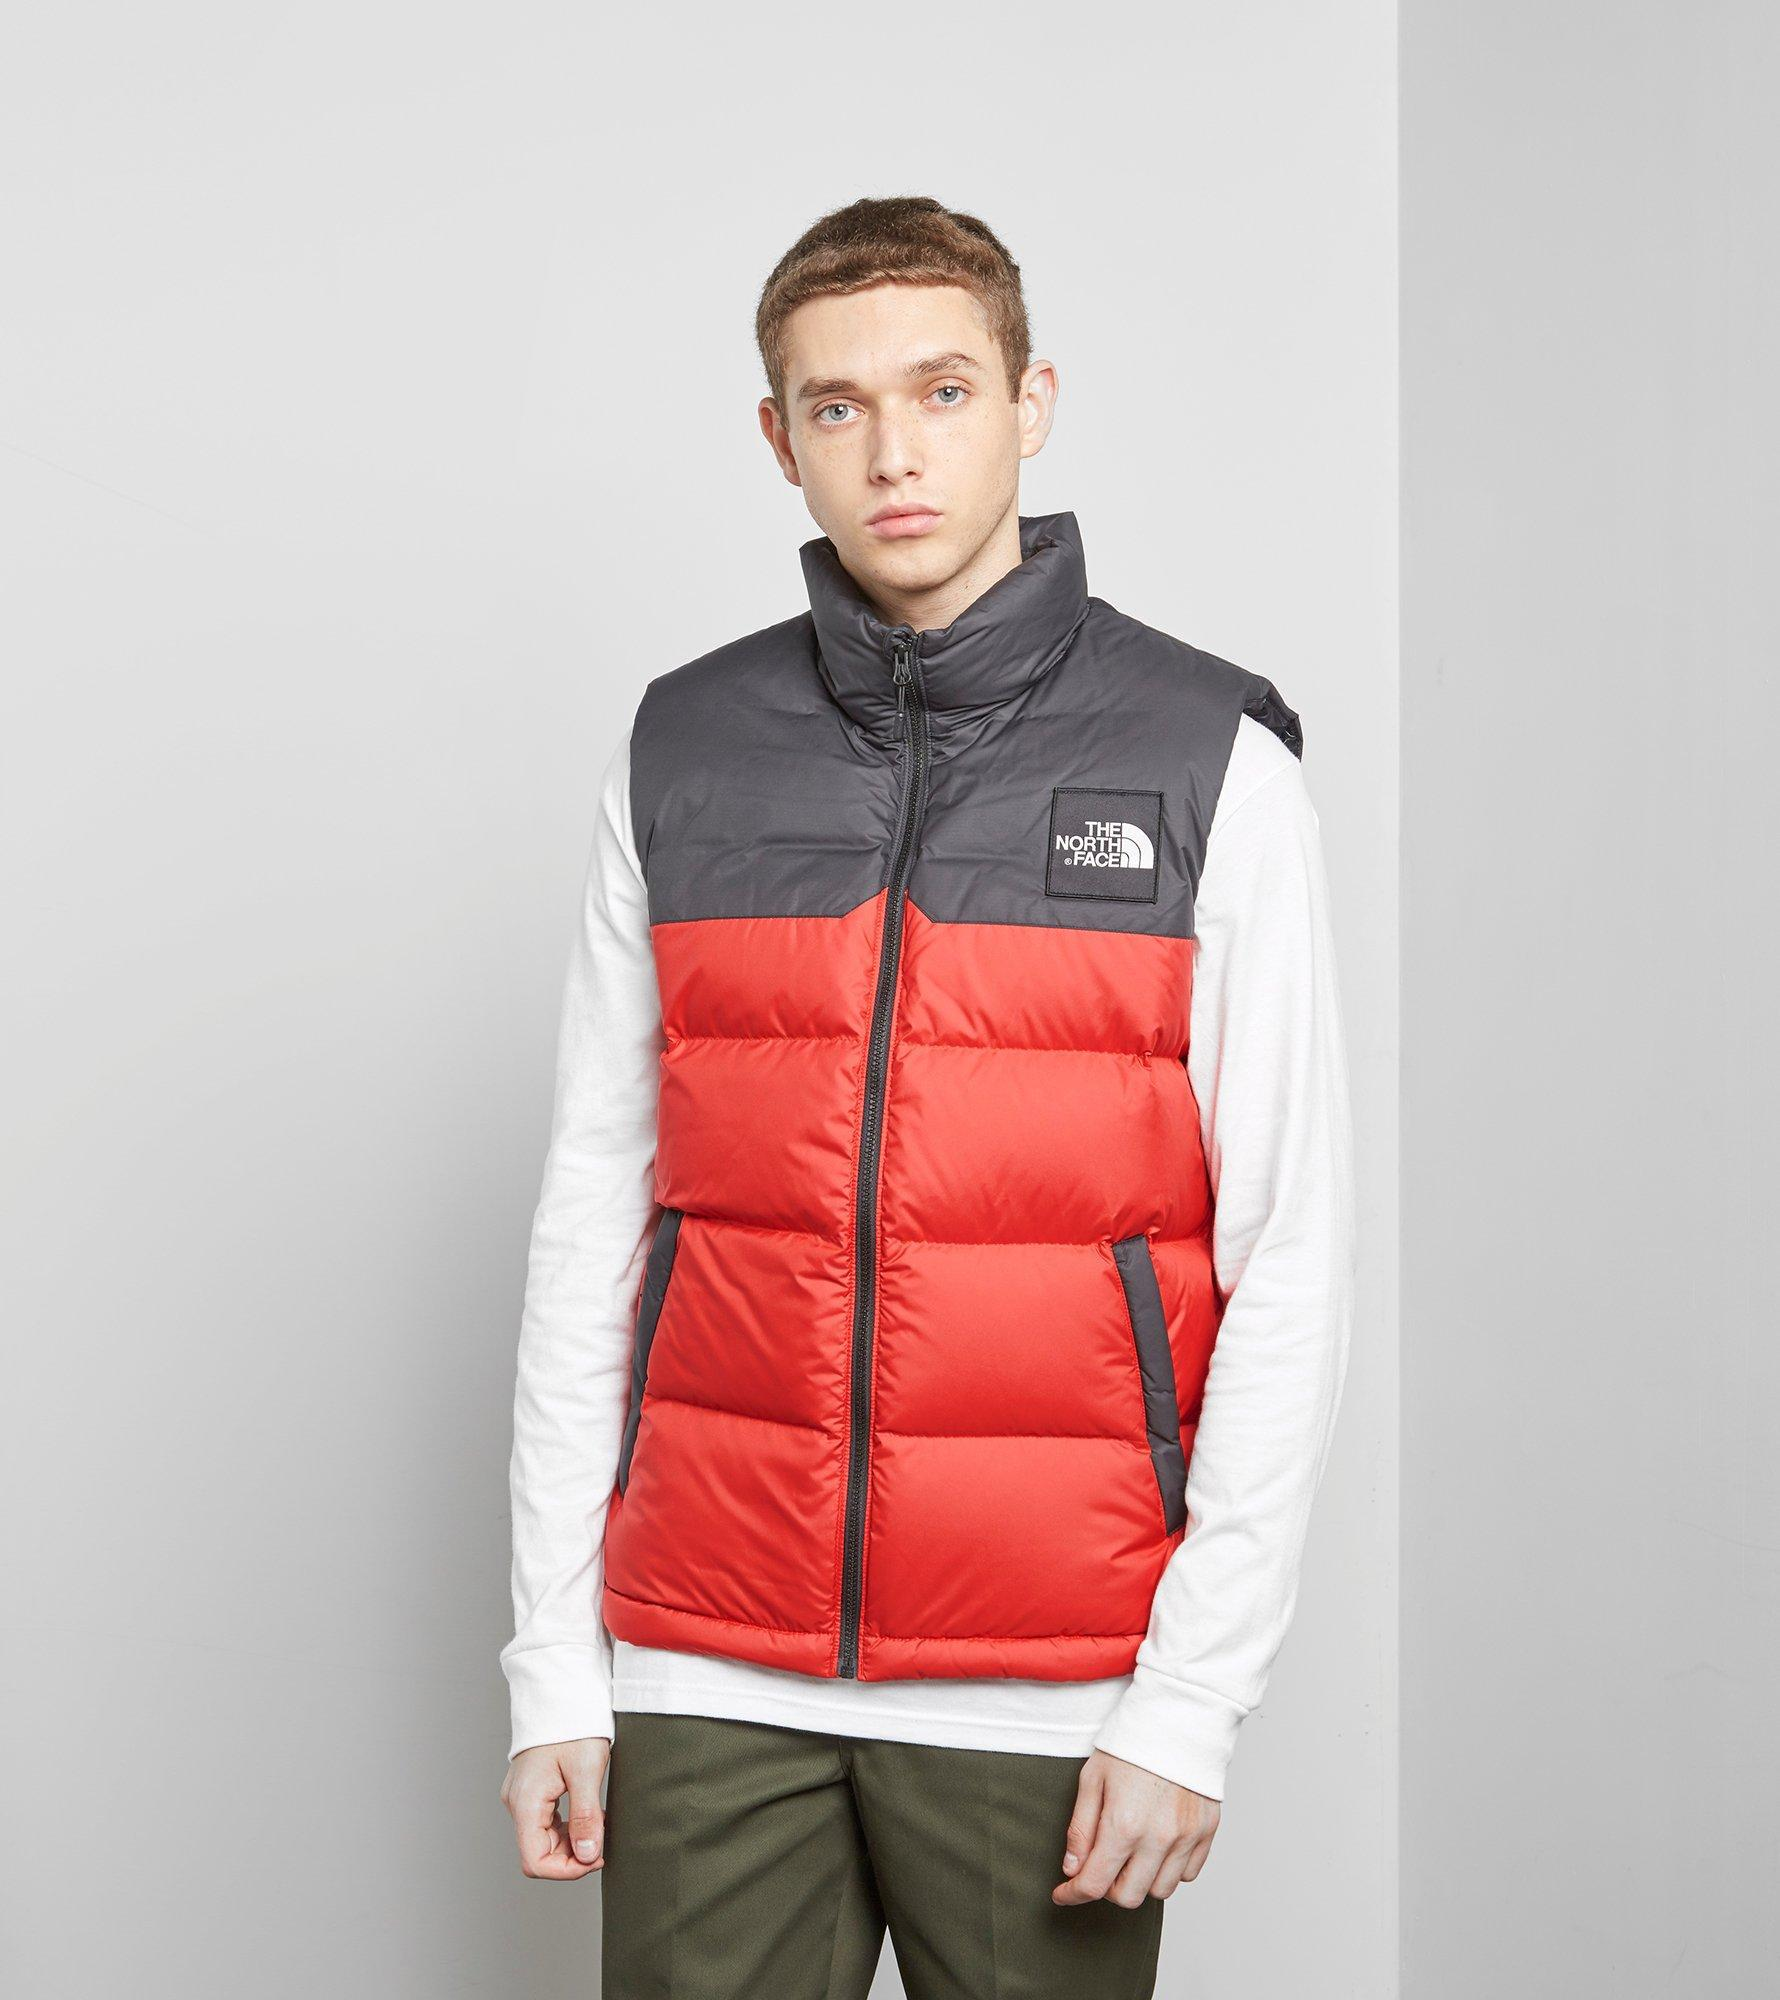 cf55ee0b56b0 best price lyst the north face 1992 nuptse vest in red for men 0349d 70031